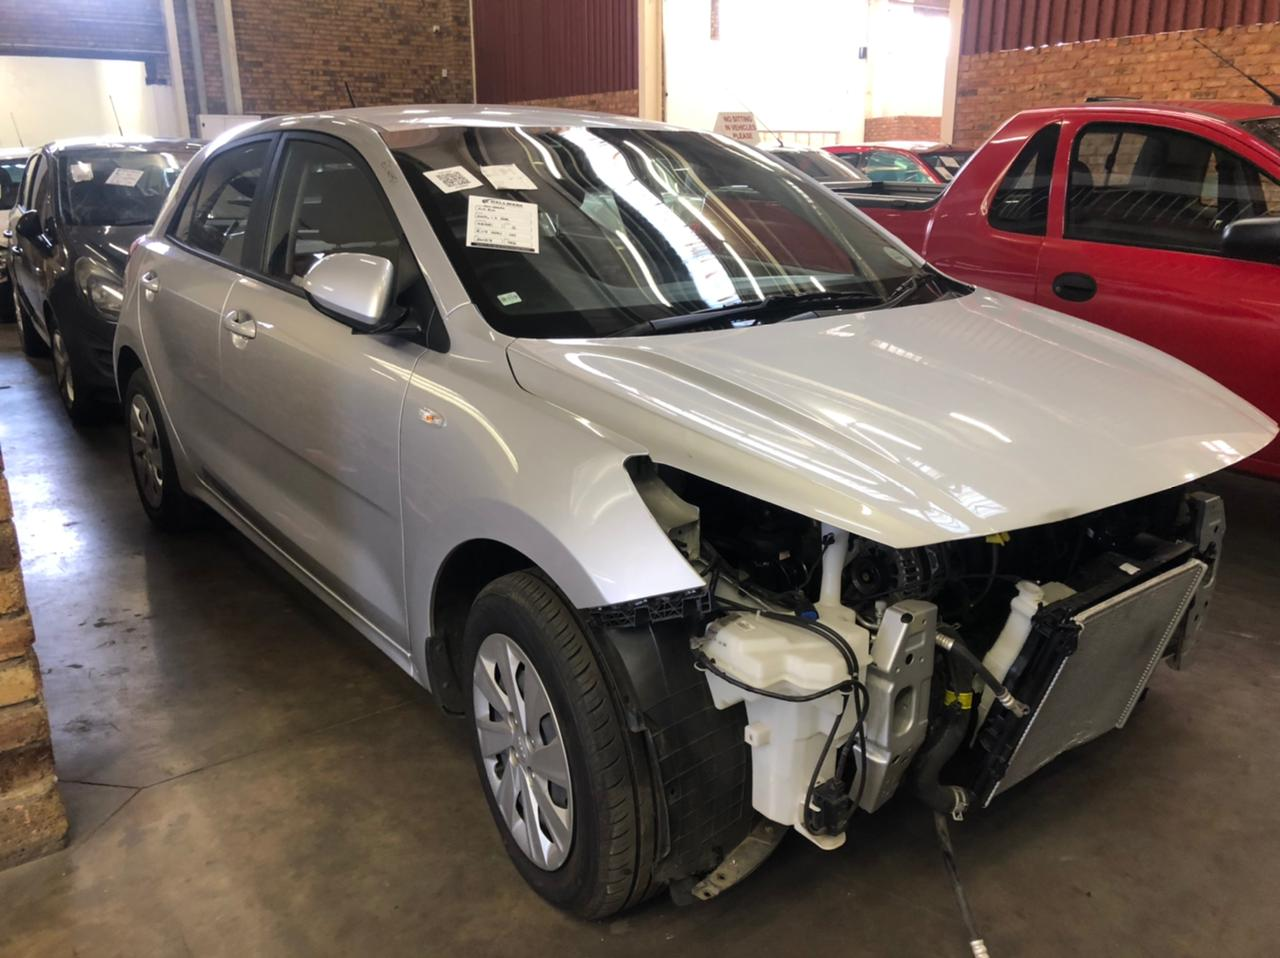 2019 Kia Rio 1.2 Hatch Accident damaged